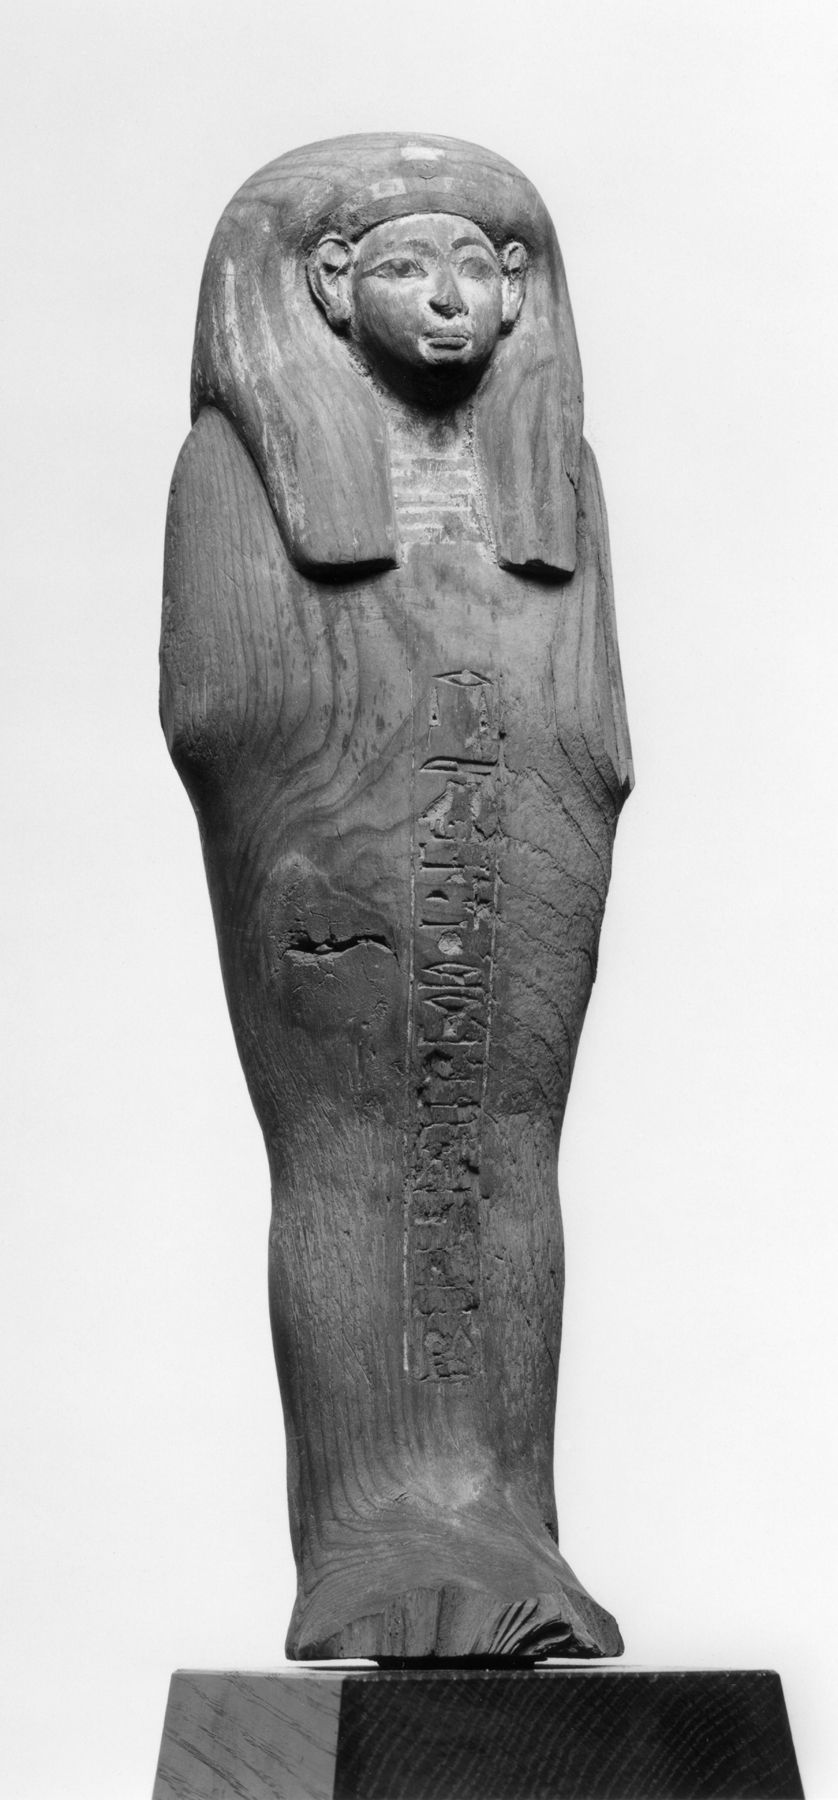 Ushabti of Ken-Amun. Ken-Amun. Ken-Amun was overseer of the royal records during the 19th Dynasty of ancient Egypt. He was married to a woman named Isis who was a singer of the god Atum. His tomb, discovered by Zahi Hawass in 2010 was found in Tell el-Maskhuta, near Ismailia, 75 miles (120 kilometers) east of Cairo. It was the first ever Ramesside Period tomb uncovered in Lower Egypt. Walters Museum, 22194